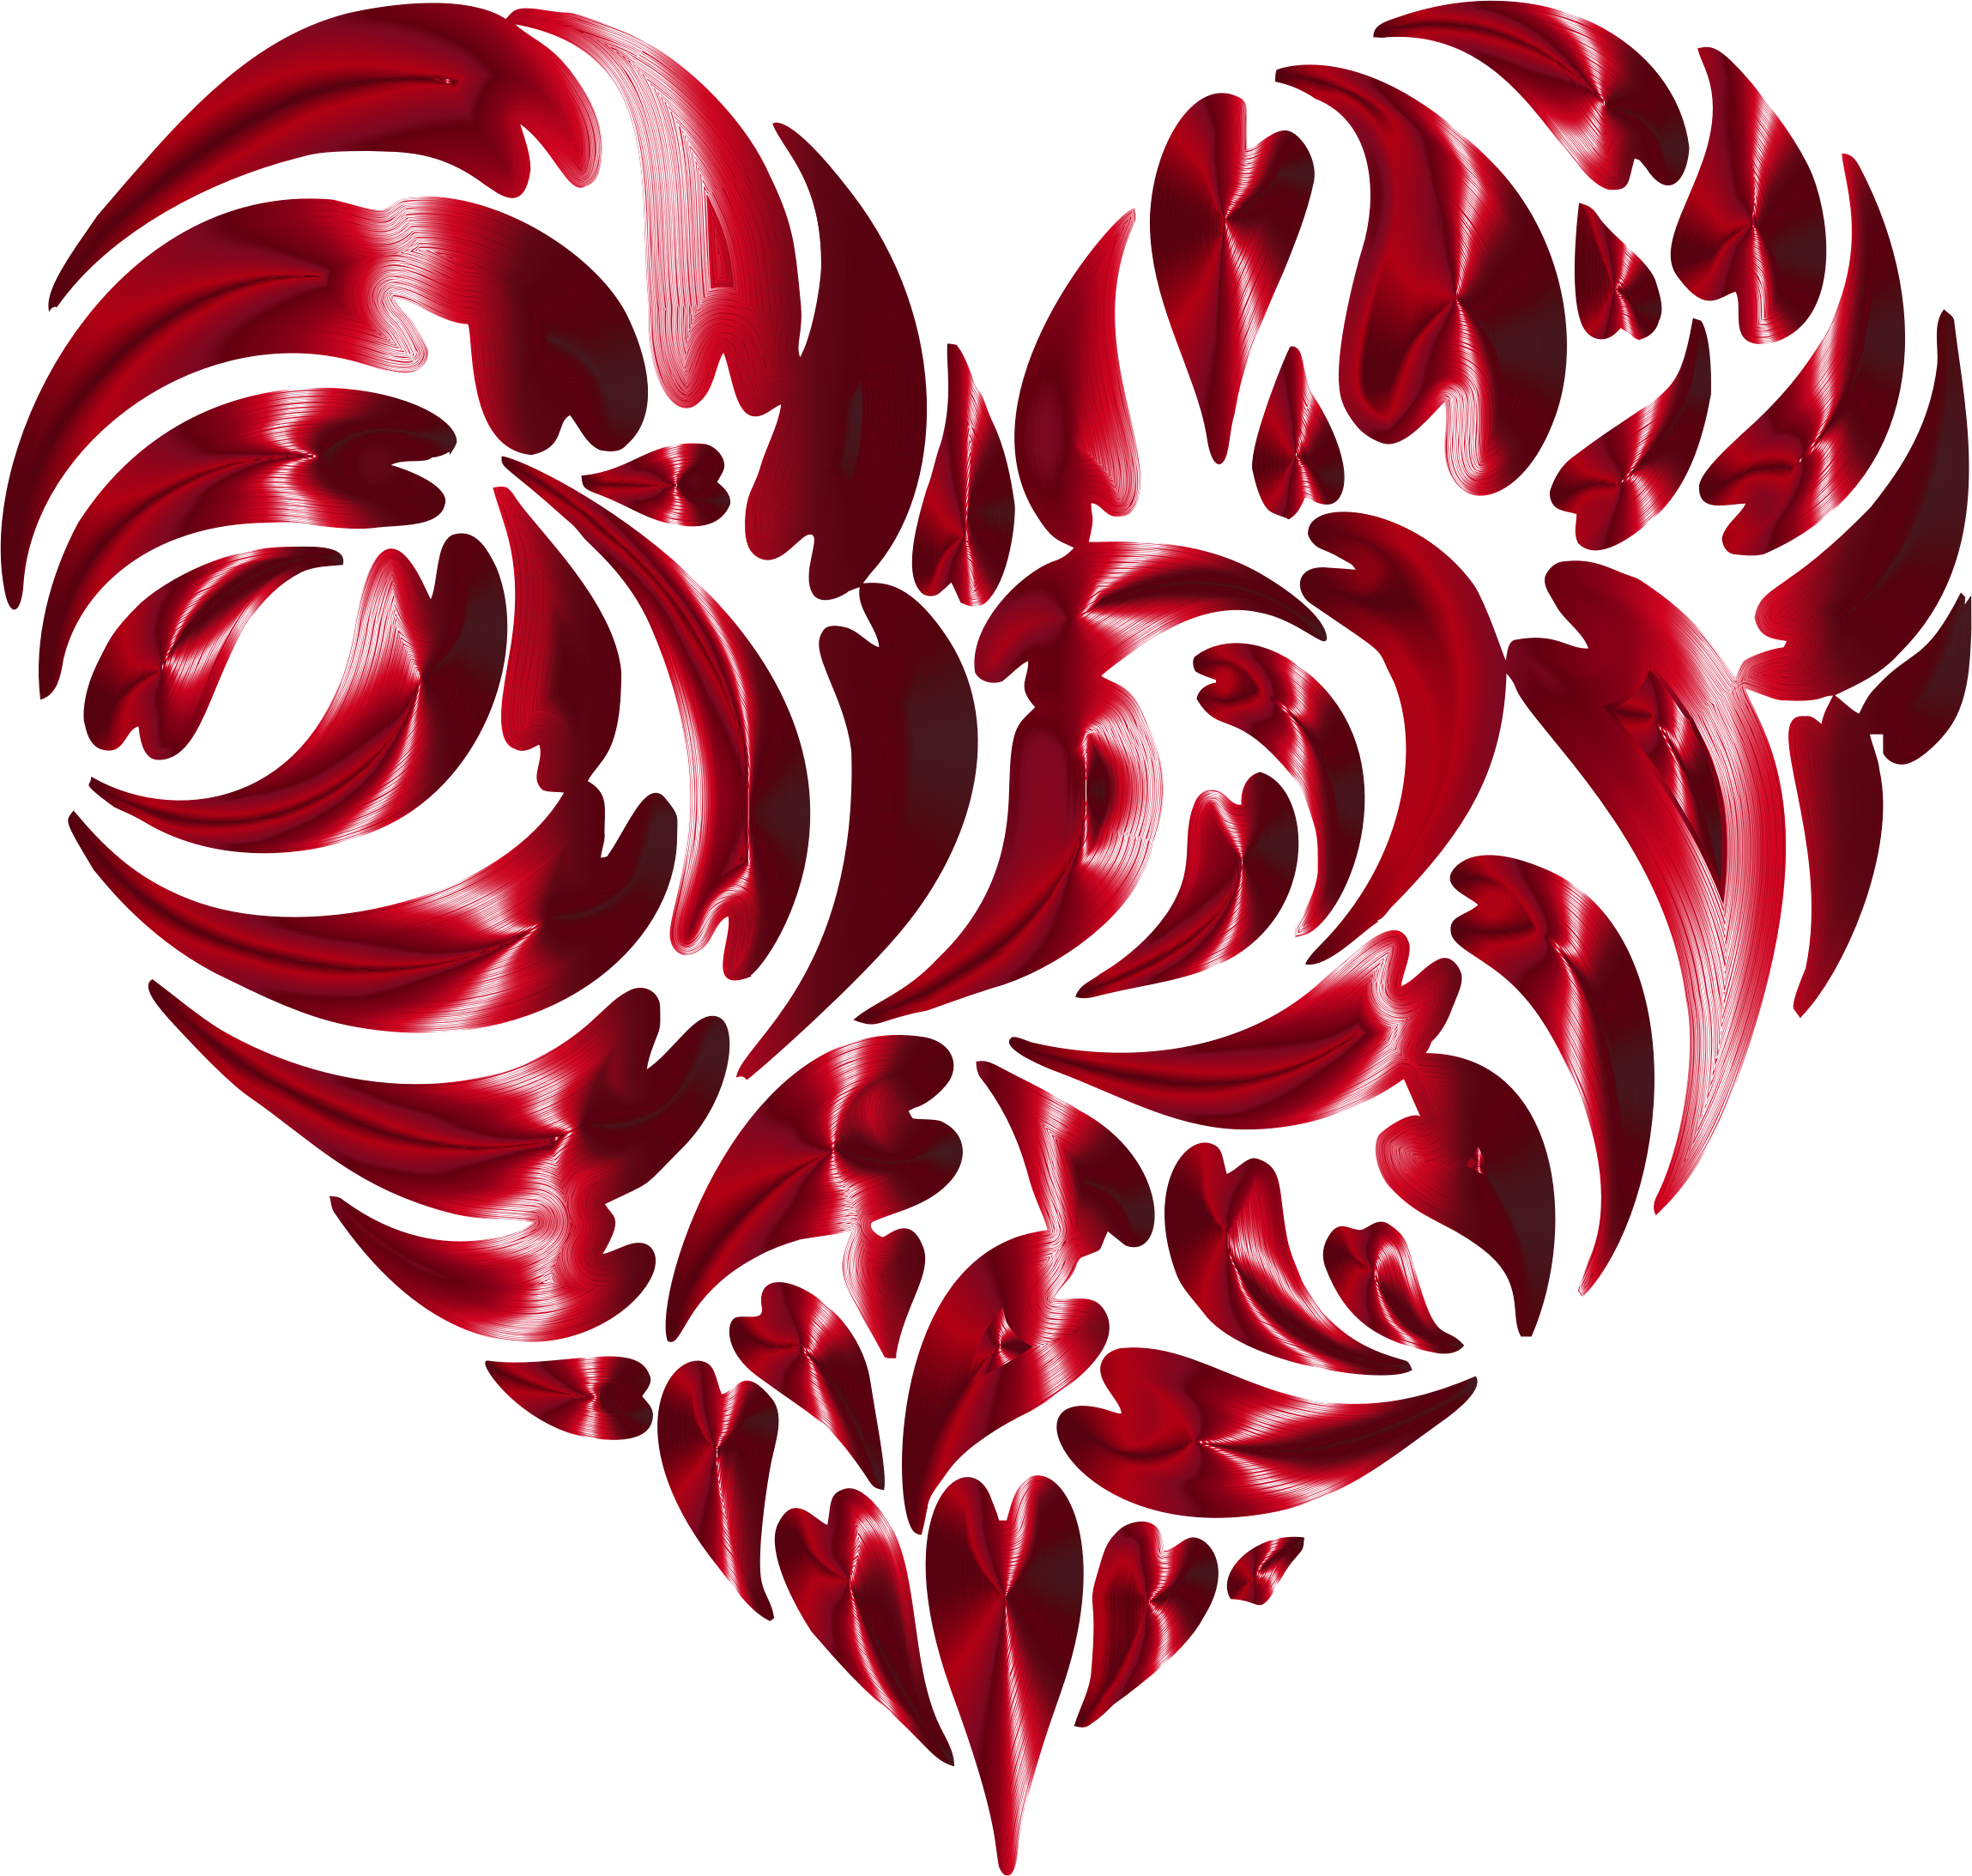 Abstract Distorted Heart Fractal Vermilion No Background by GDJ